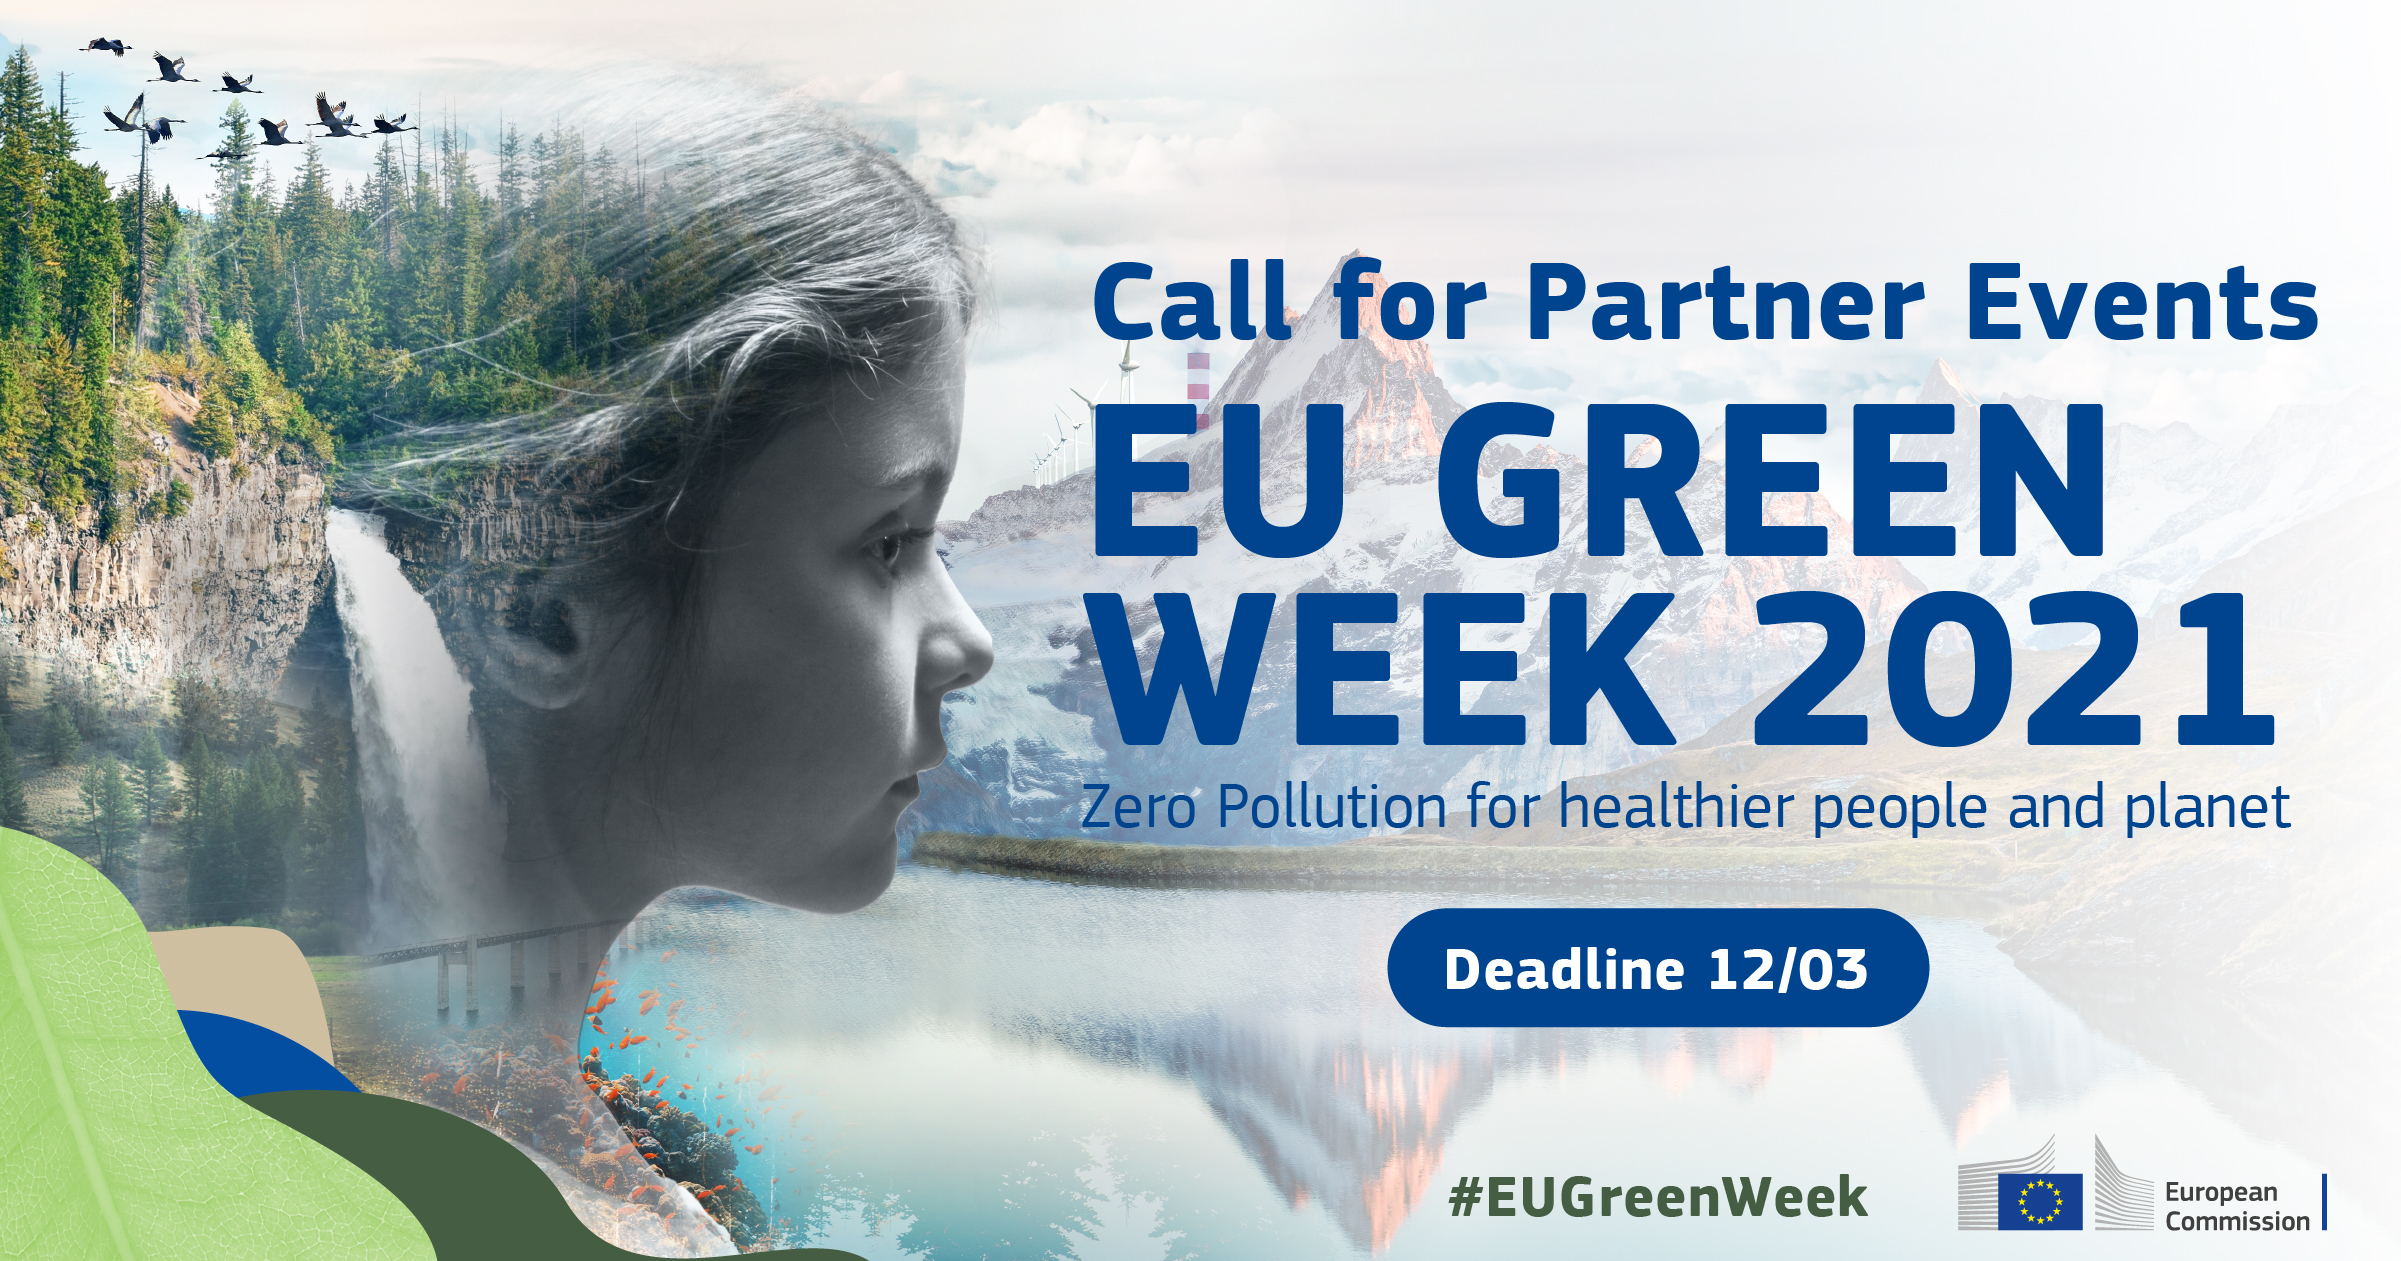 EU Green Week 2021 Web banner